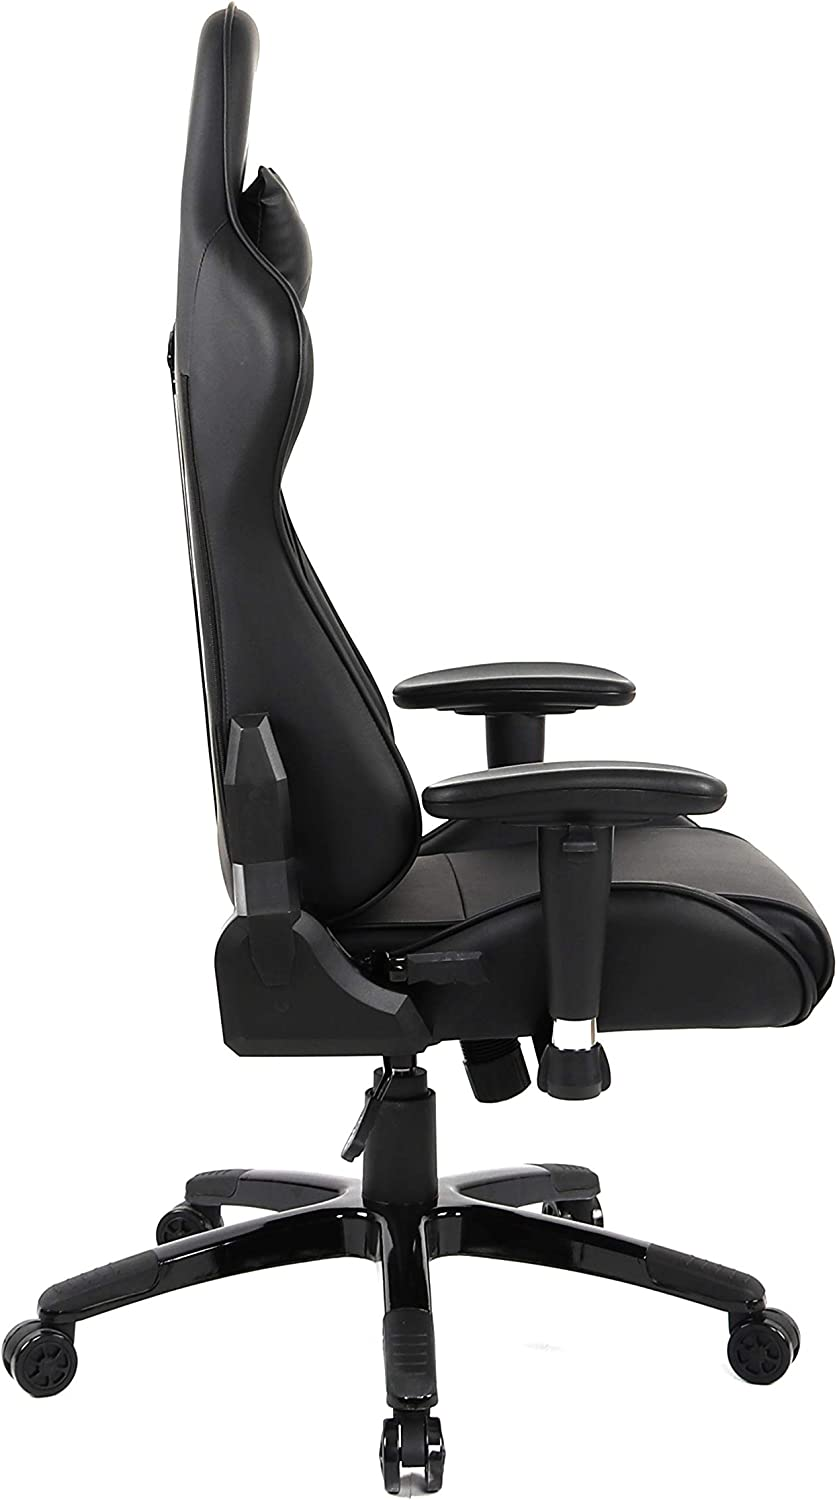 1337 Industries - Chaise Gaming 1337 Gc767/Bc V2 Noir